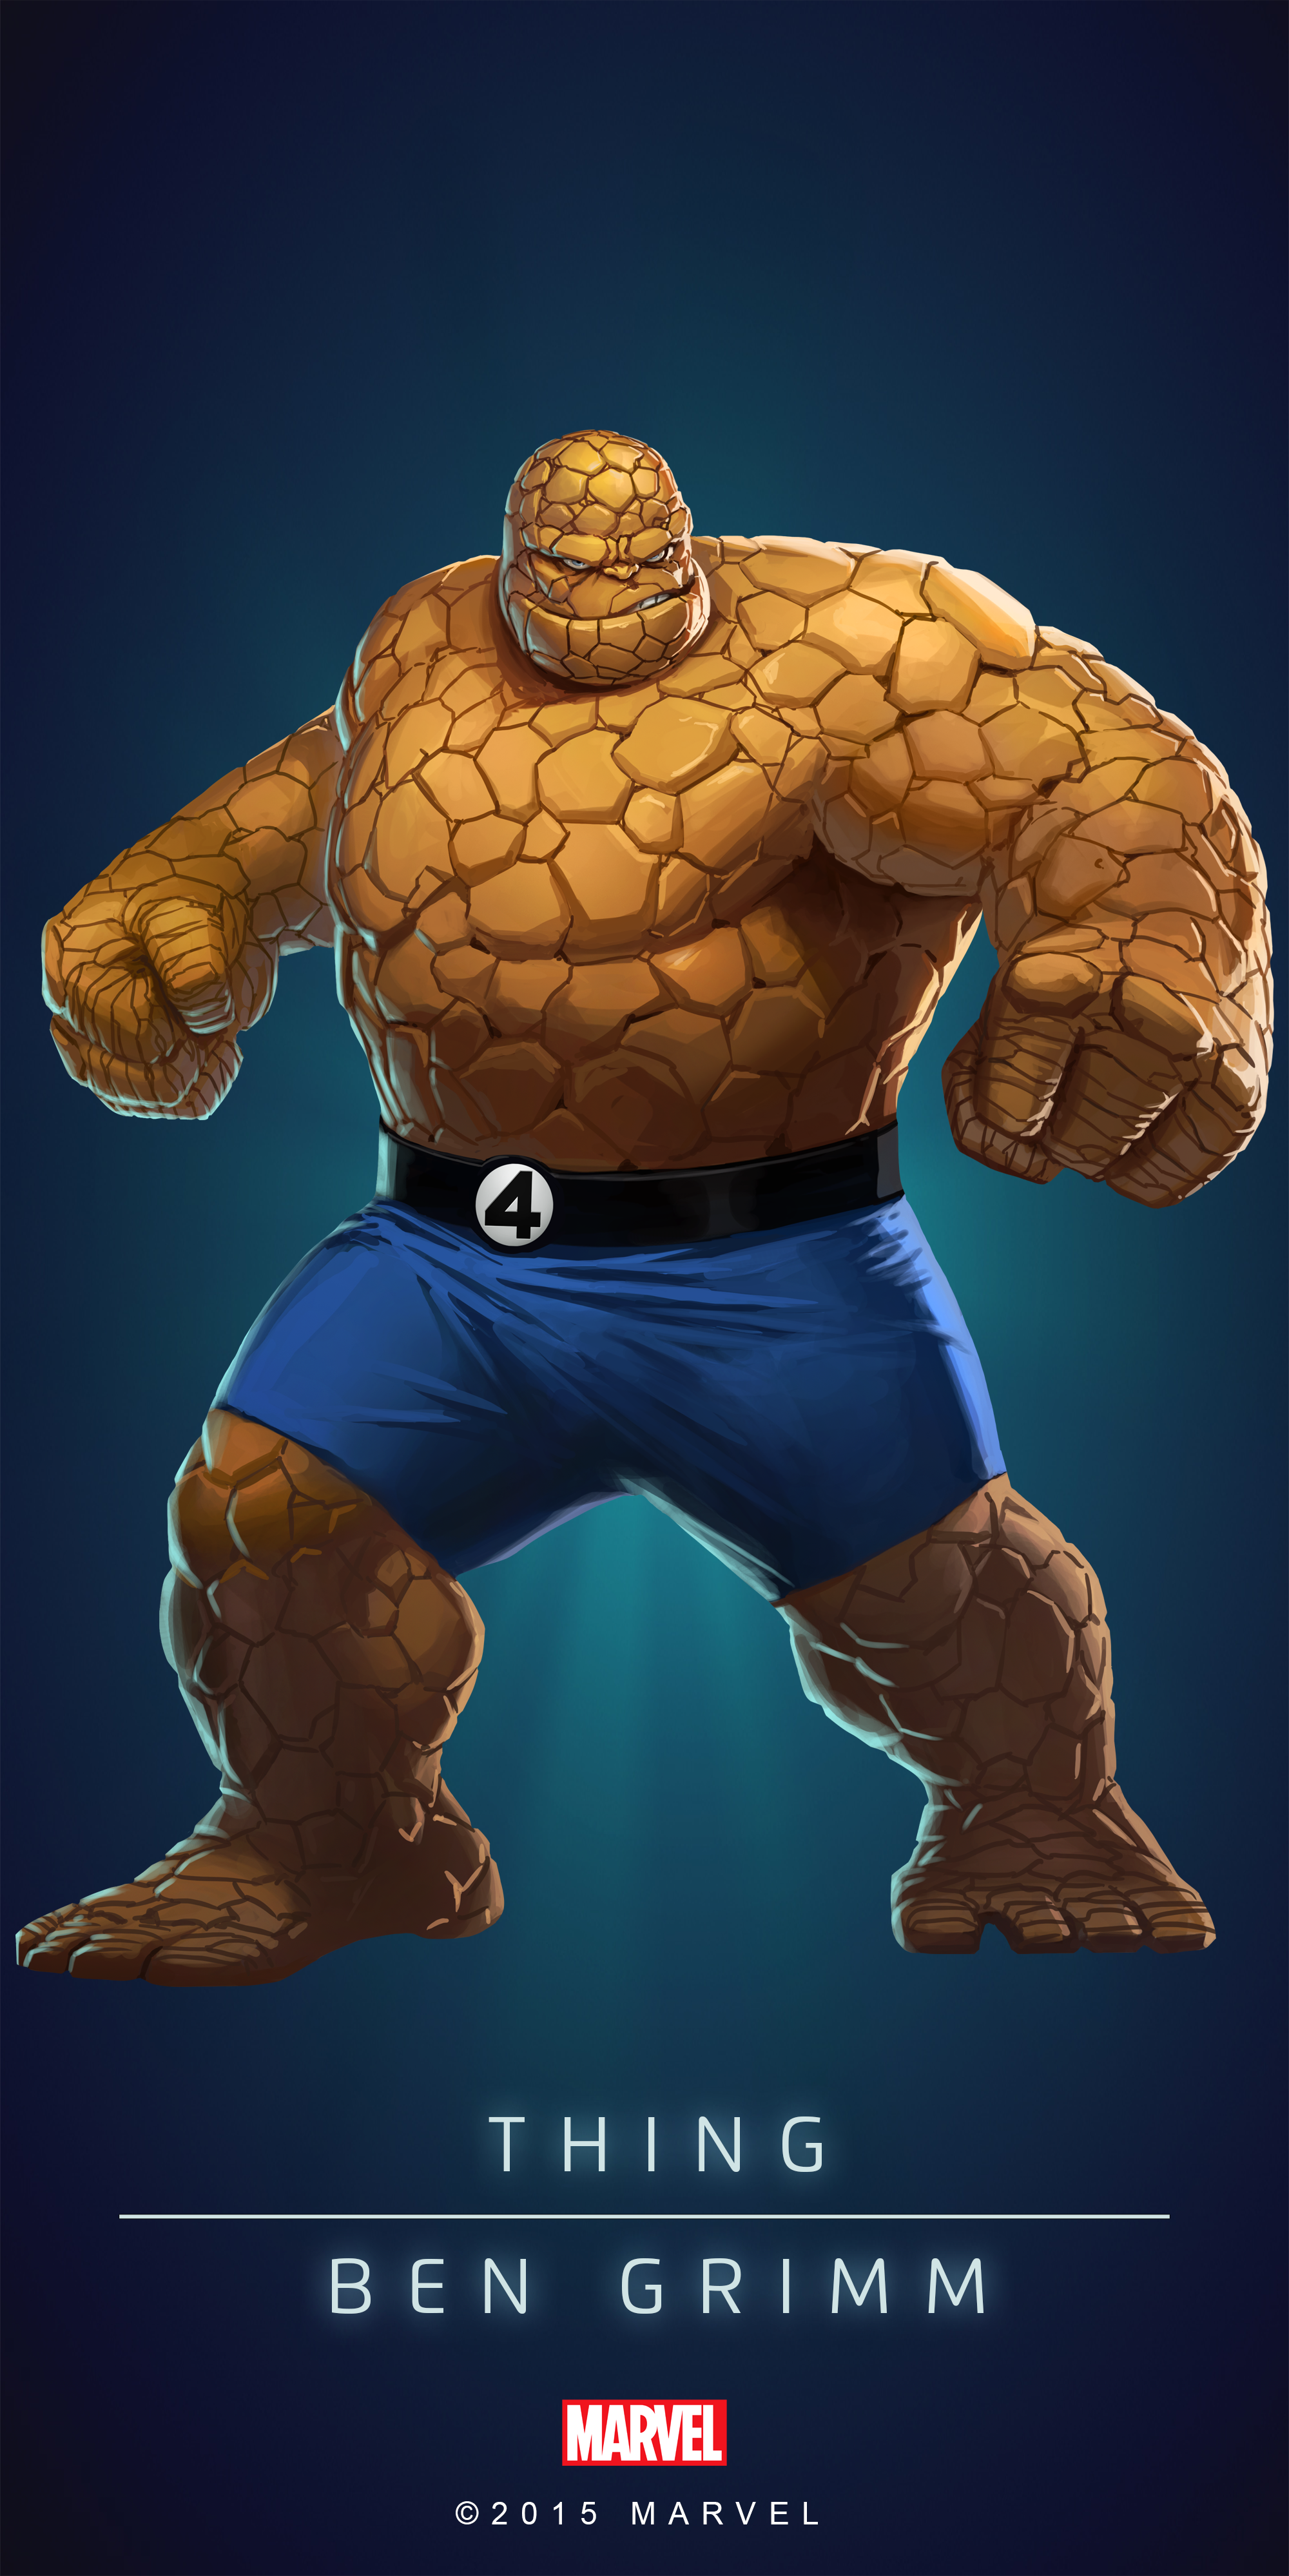 Thing_Poster_01.png (2000×3997)